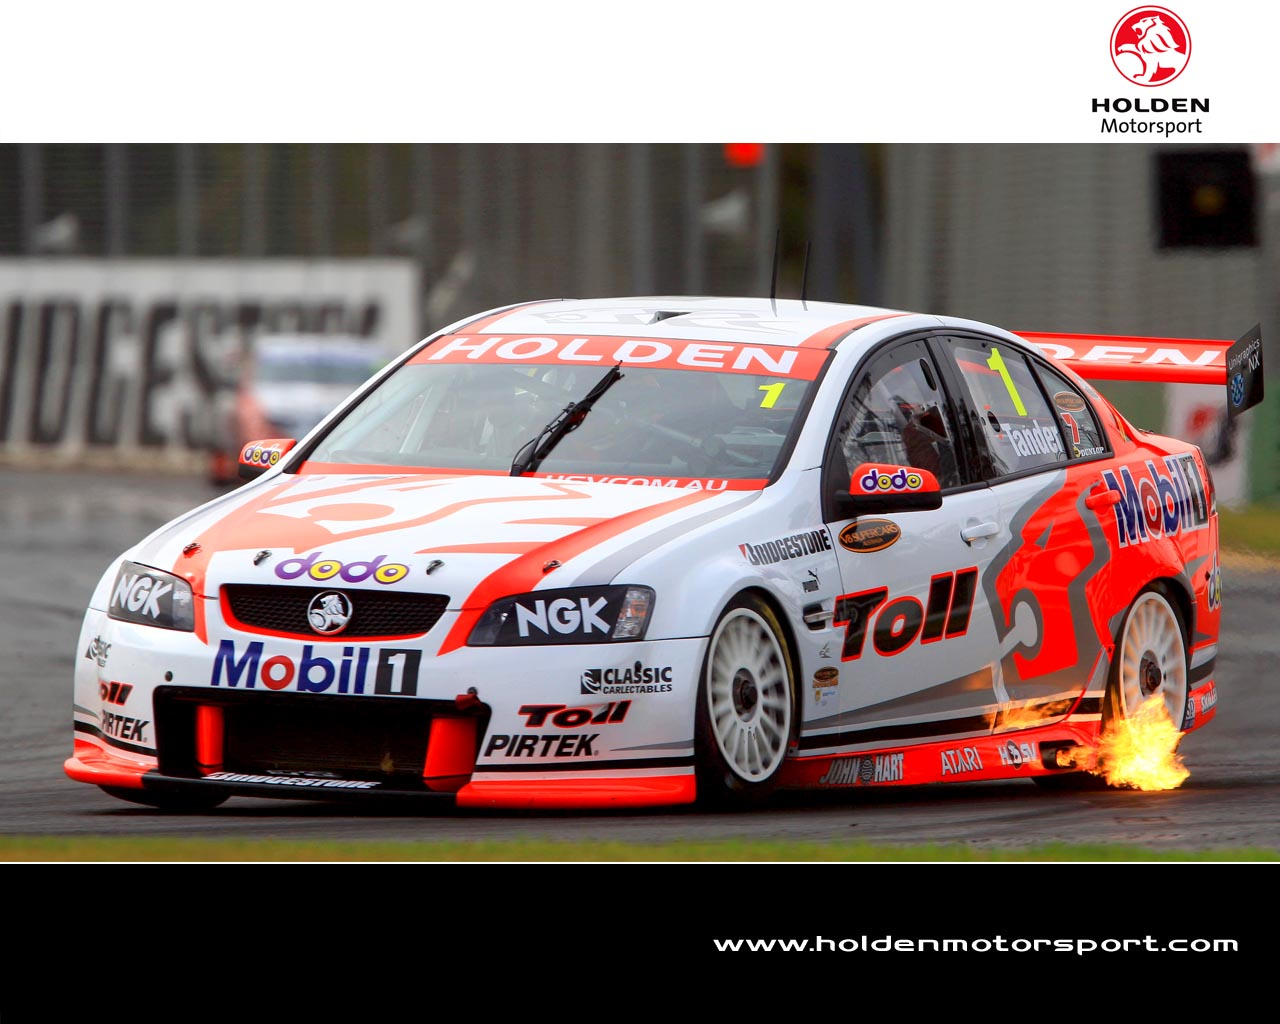 Cars V8 Wallpaper 1280x1024 Cars V8 Supercars V8 Supercars 1280x1024